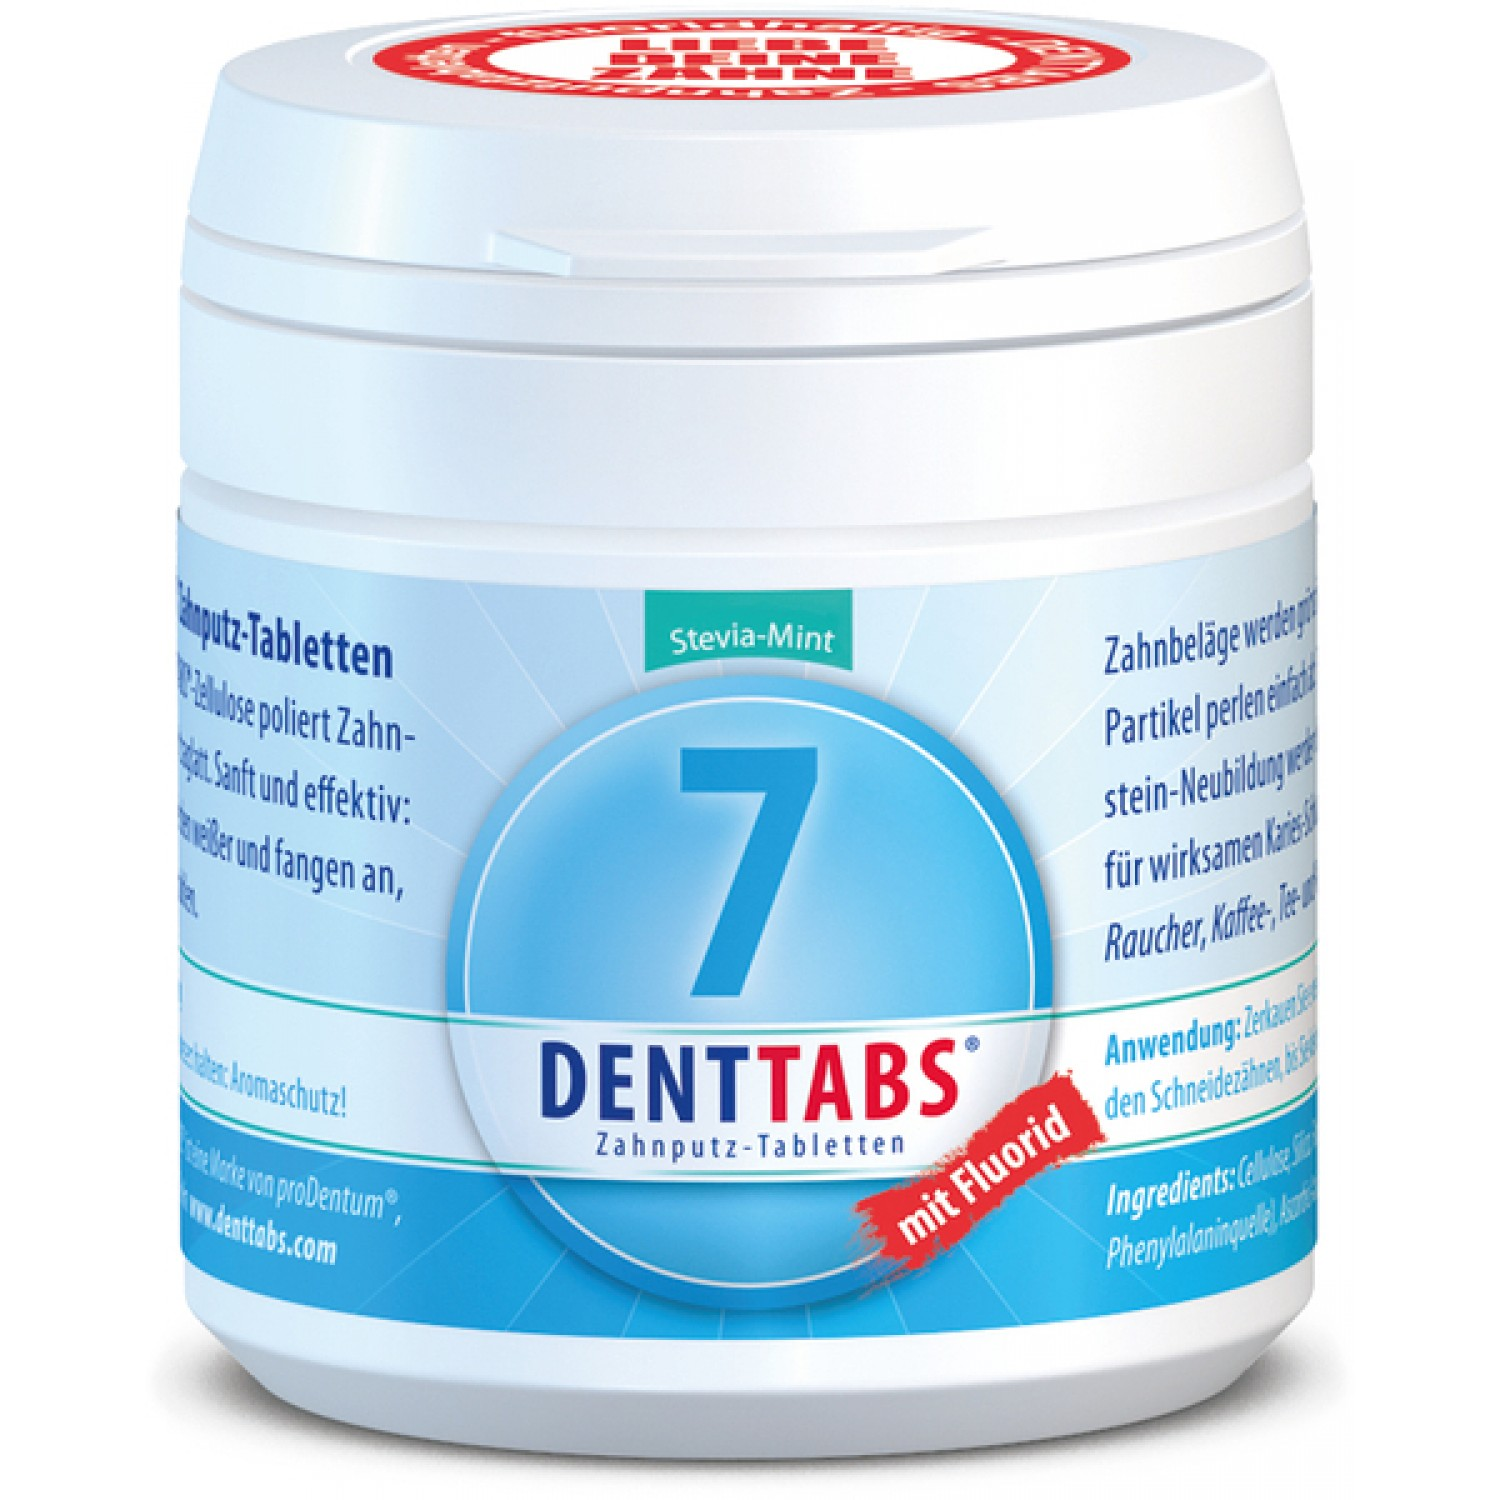 DENTTABS with fluoride for pastic-free natural dental care